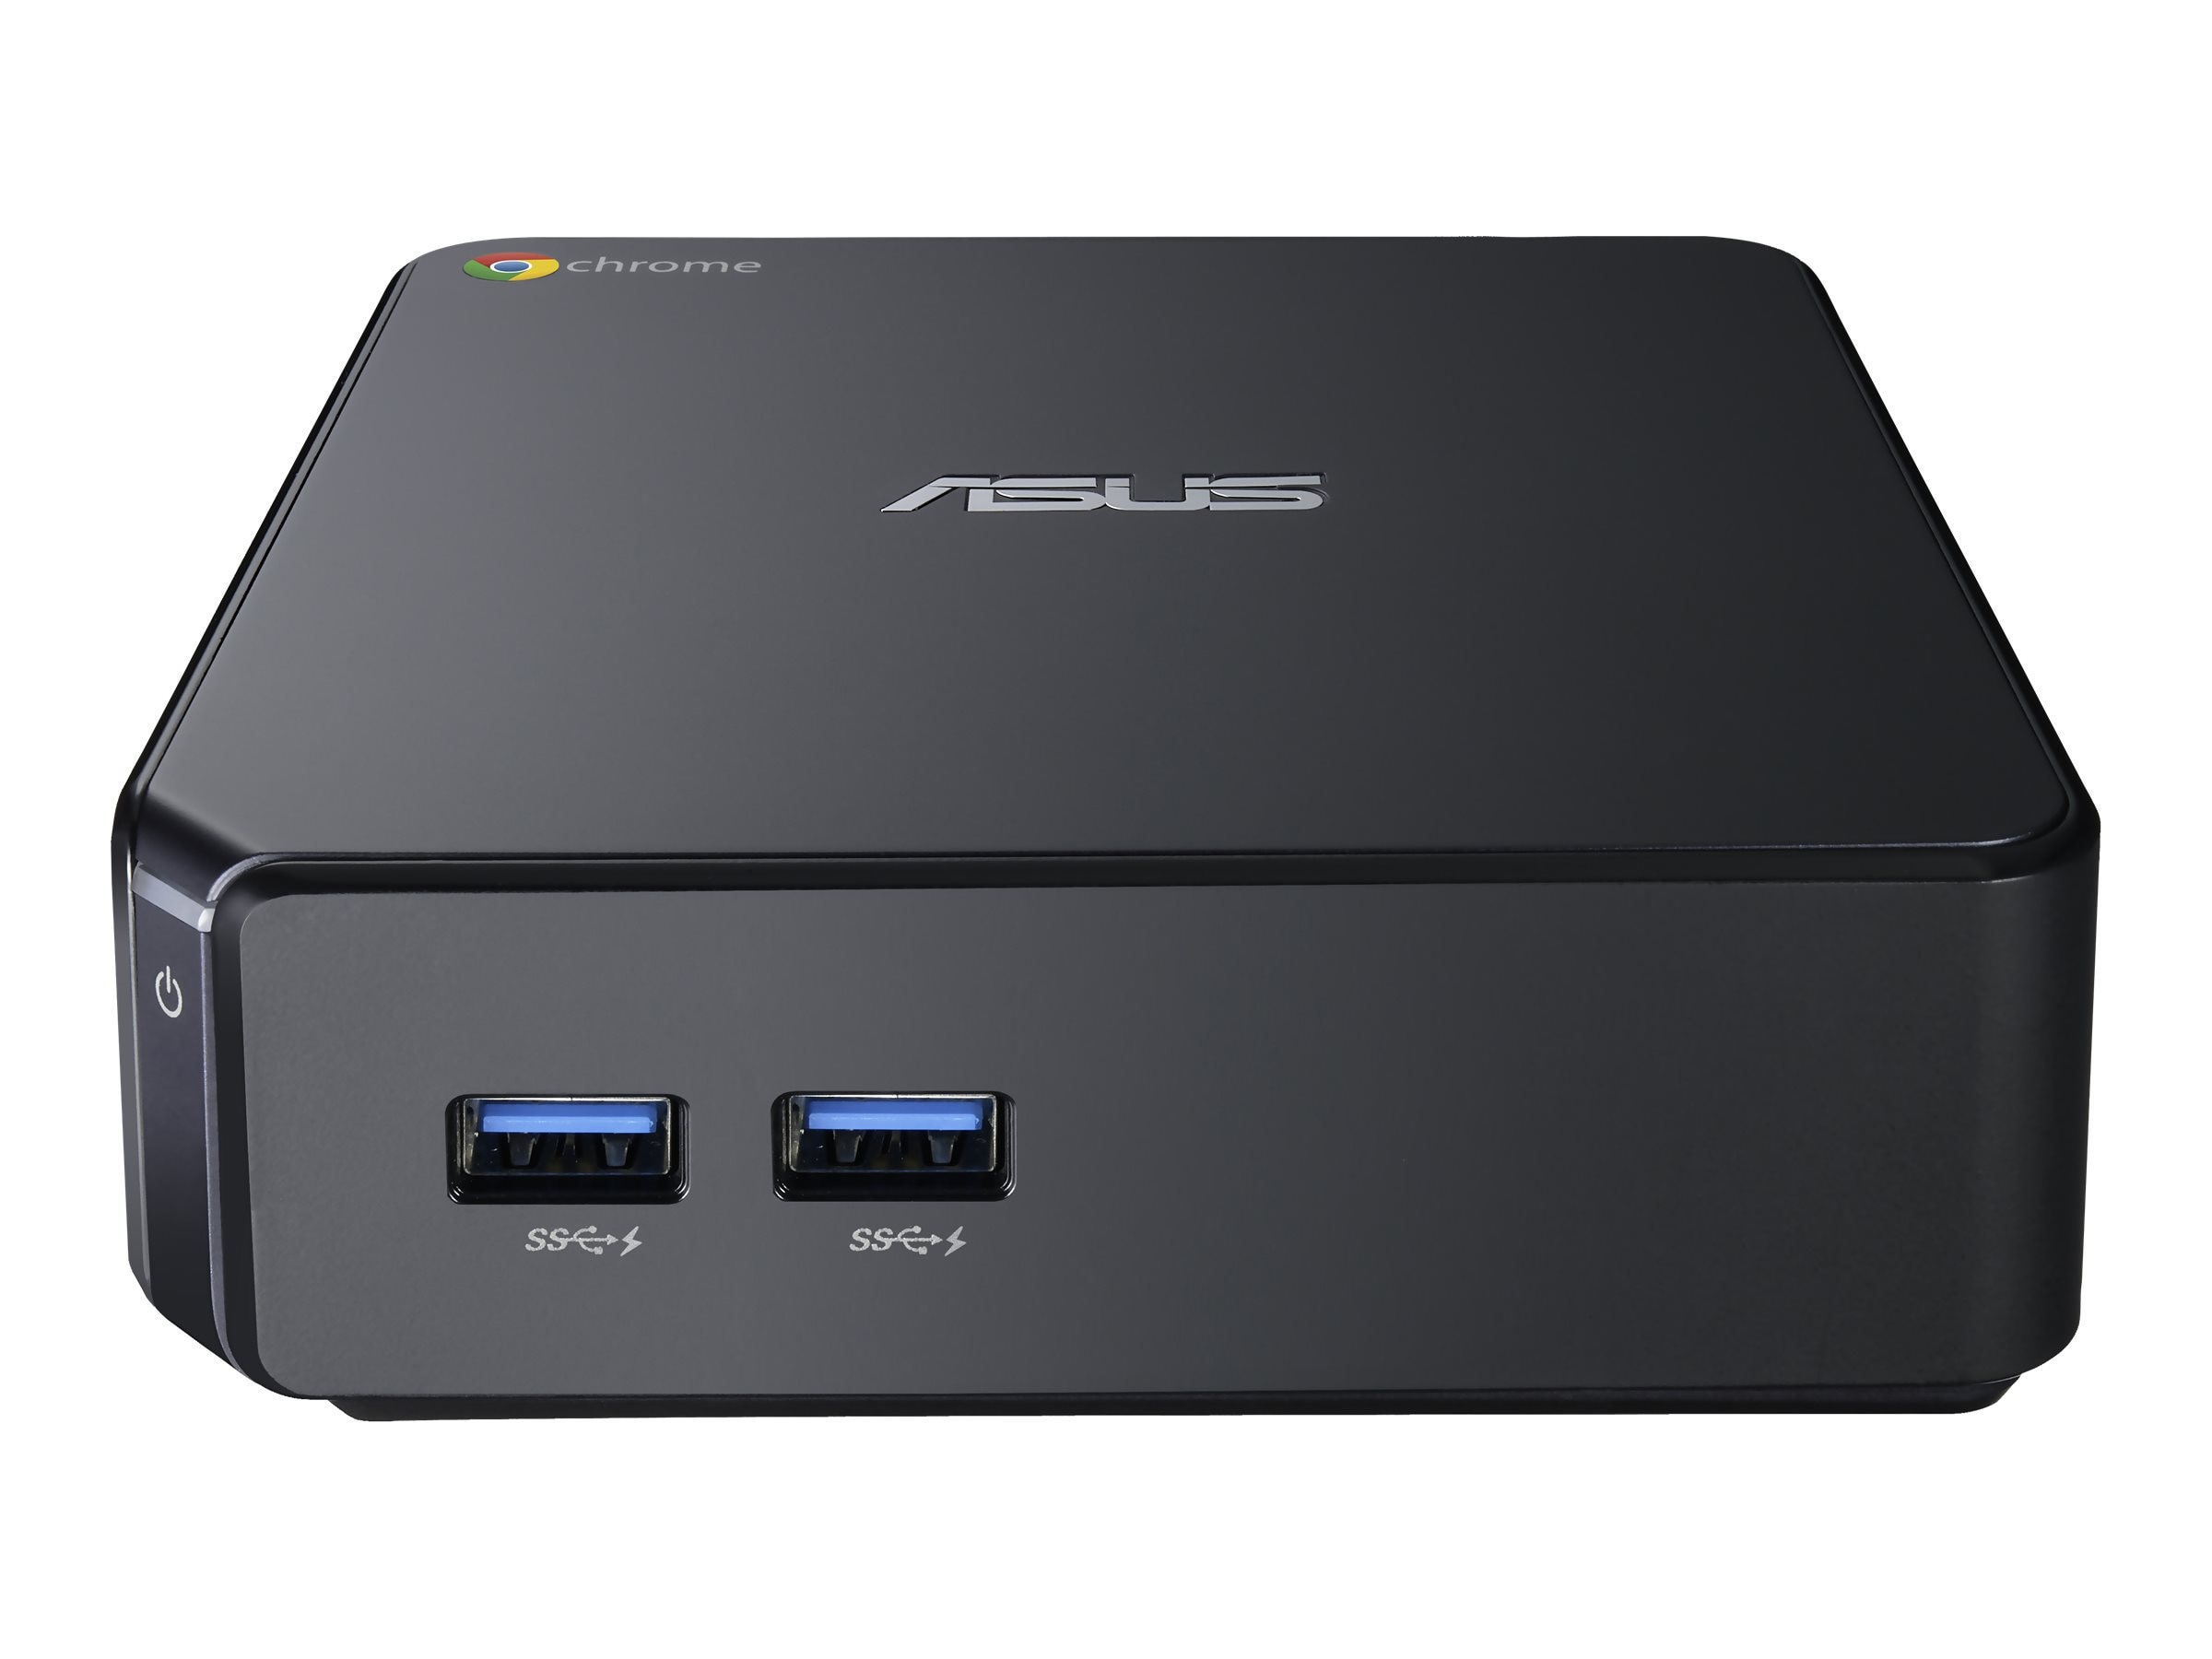 Asus Chromebox M106U Celeron 2955U 1.4GHz 2GB 16GB SSD WL ChromeOS